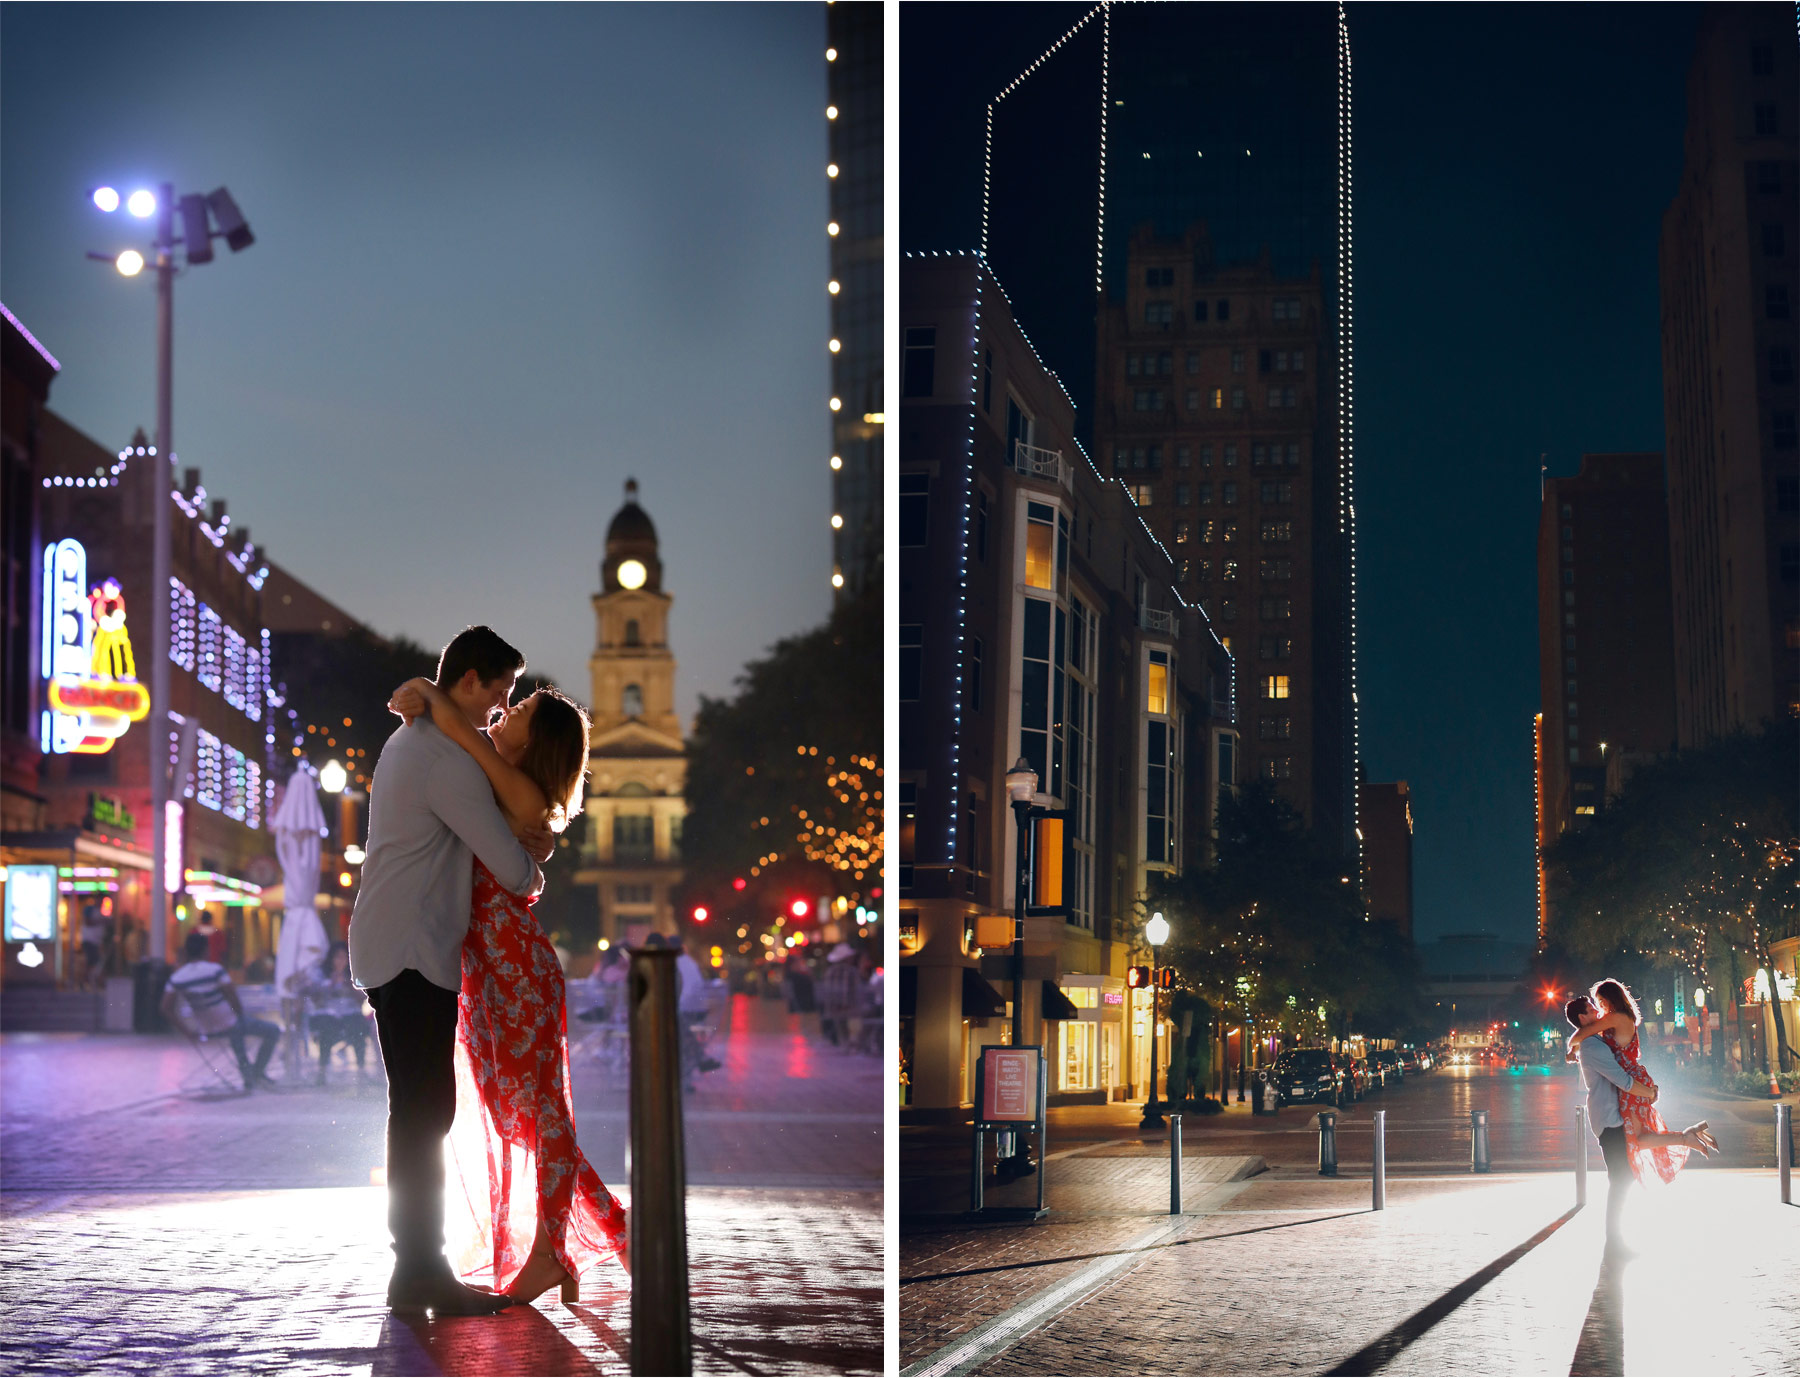 16-Fly-to-Me-Destination-Engagement-Session-Vick-Photography-Fort-Worth-Texas-Couple-Night-Skyline-City-Lights-Downtown-Maggie-and-Matt.jpg